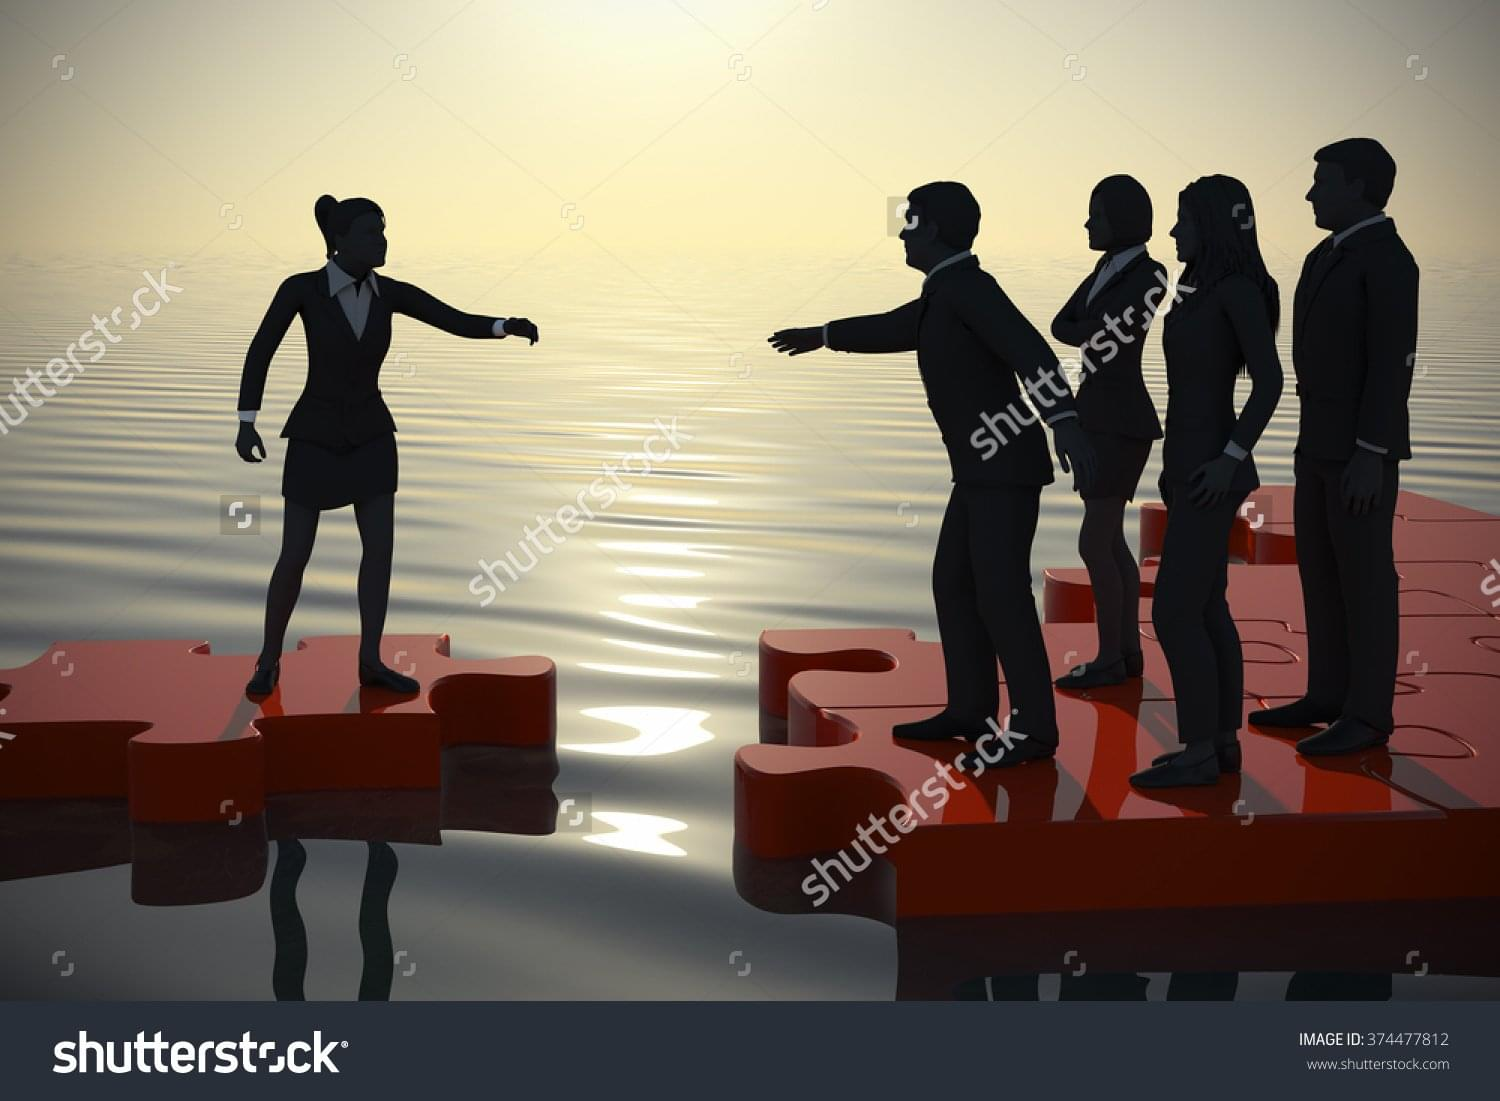 stock-photo-jigsaw-puzzle-recruiting-a-new-lady-executive-at-dawn-by-the-sea-a-successful-team-recruiting-a-374477812